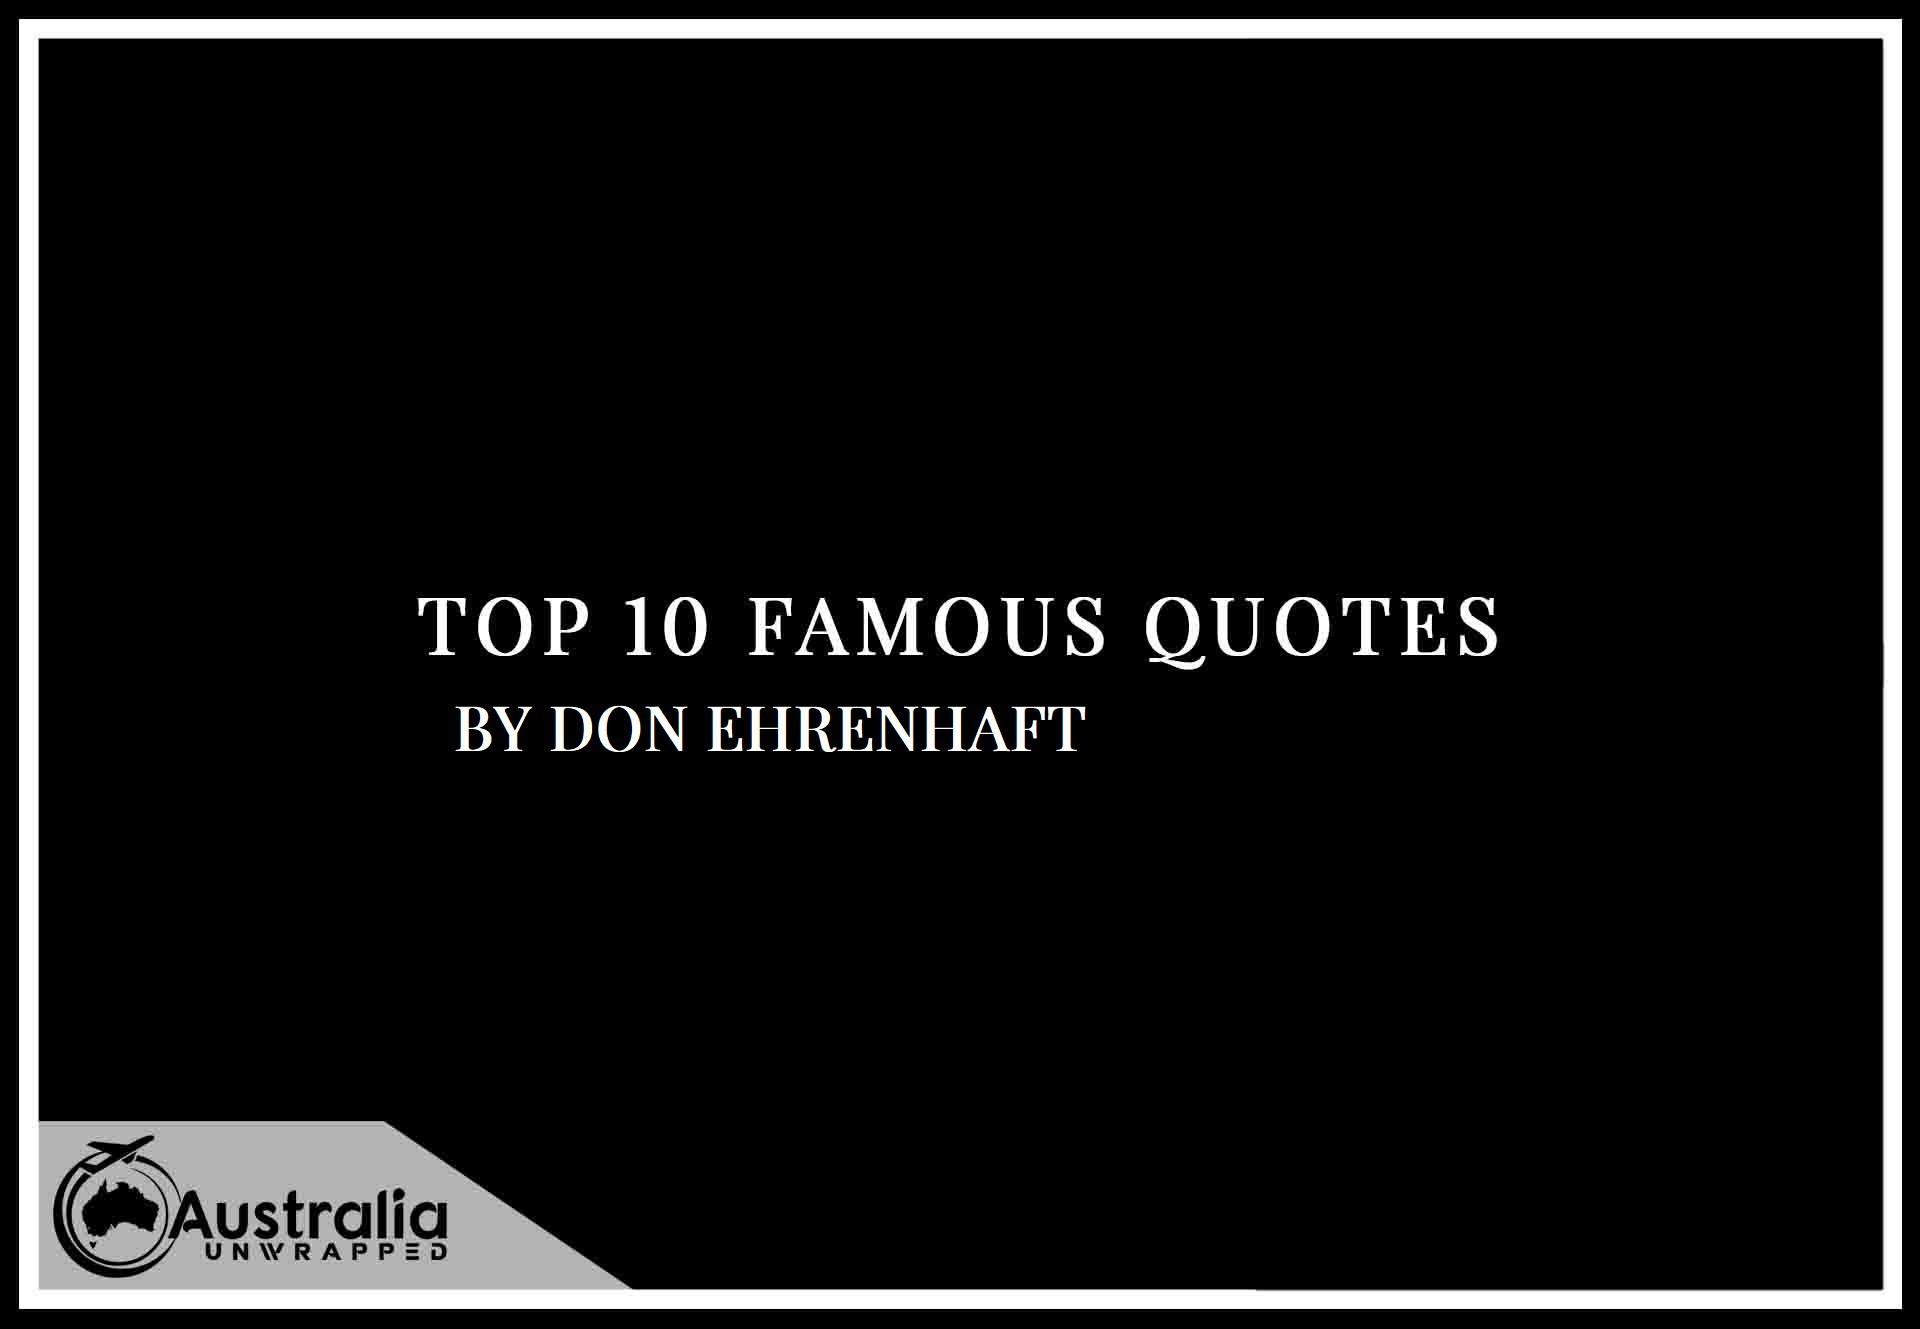 Top 10 Famous Quotes by Author Daniel Ehrenhaft